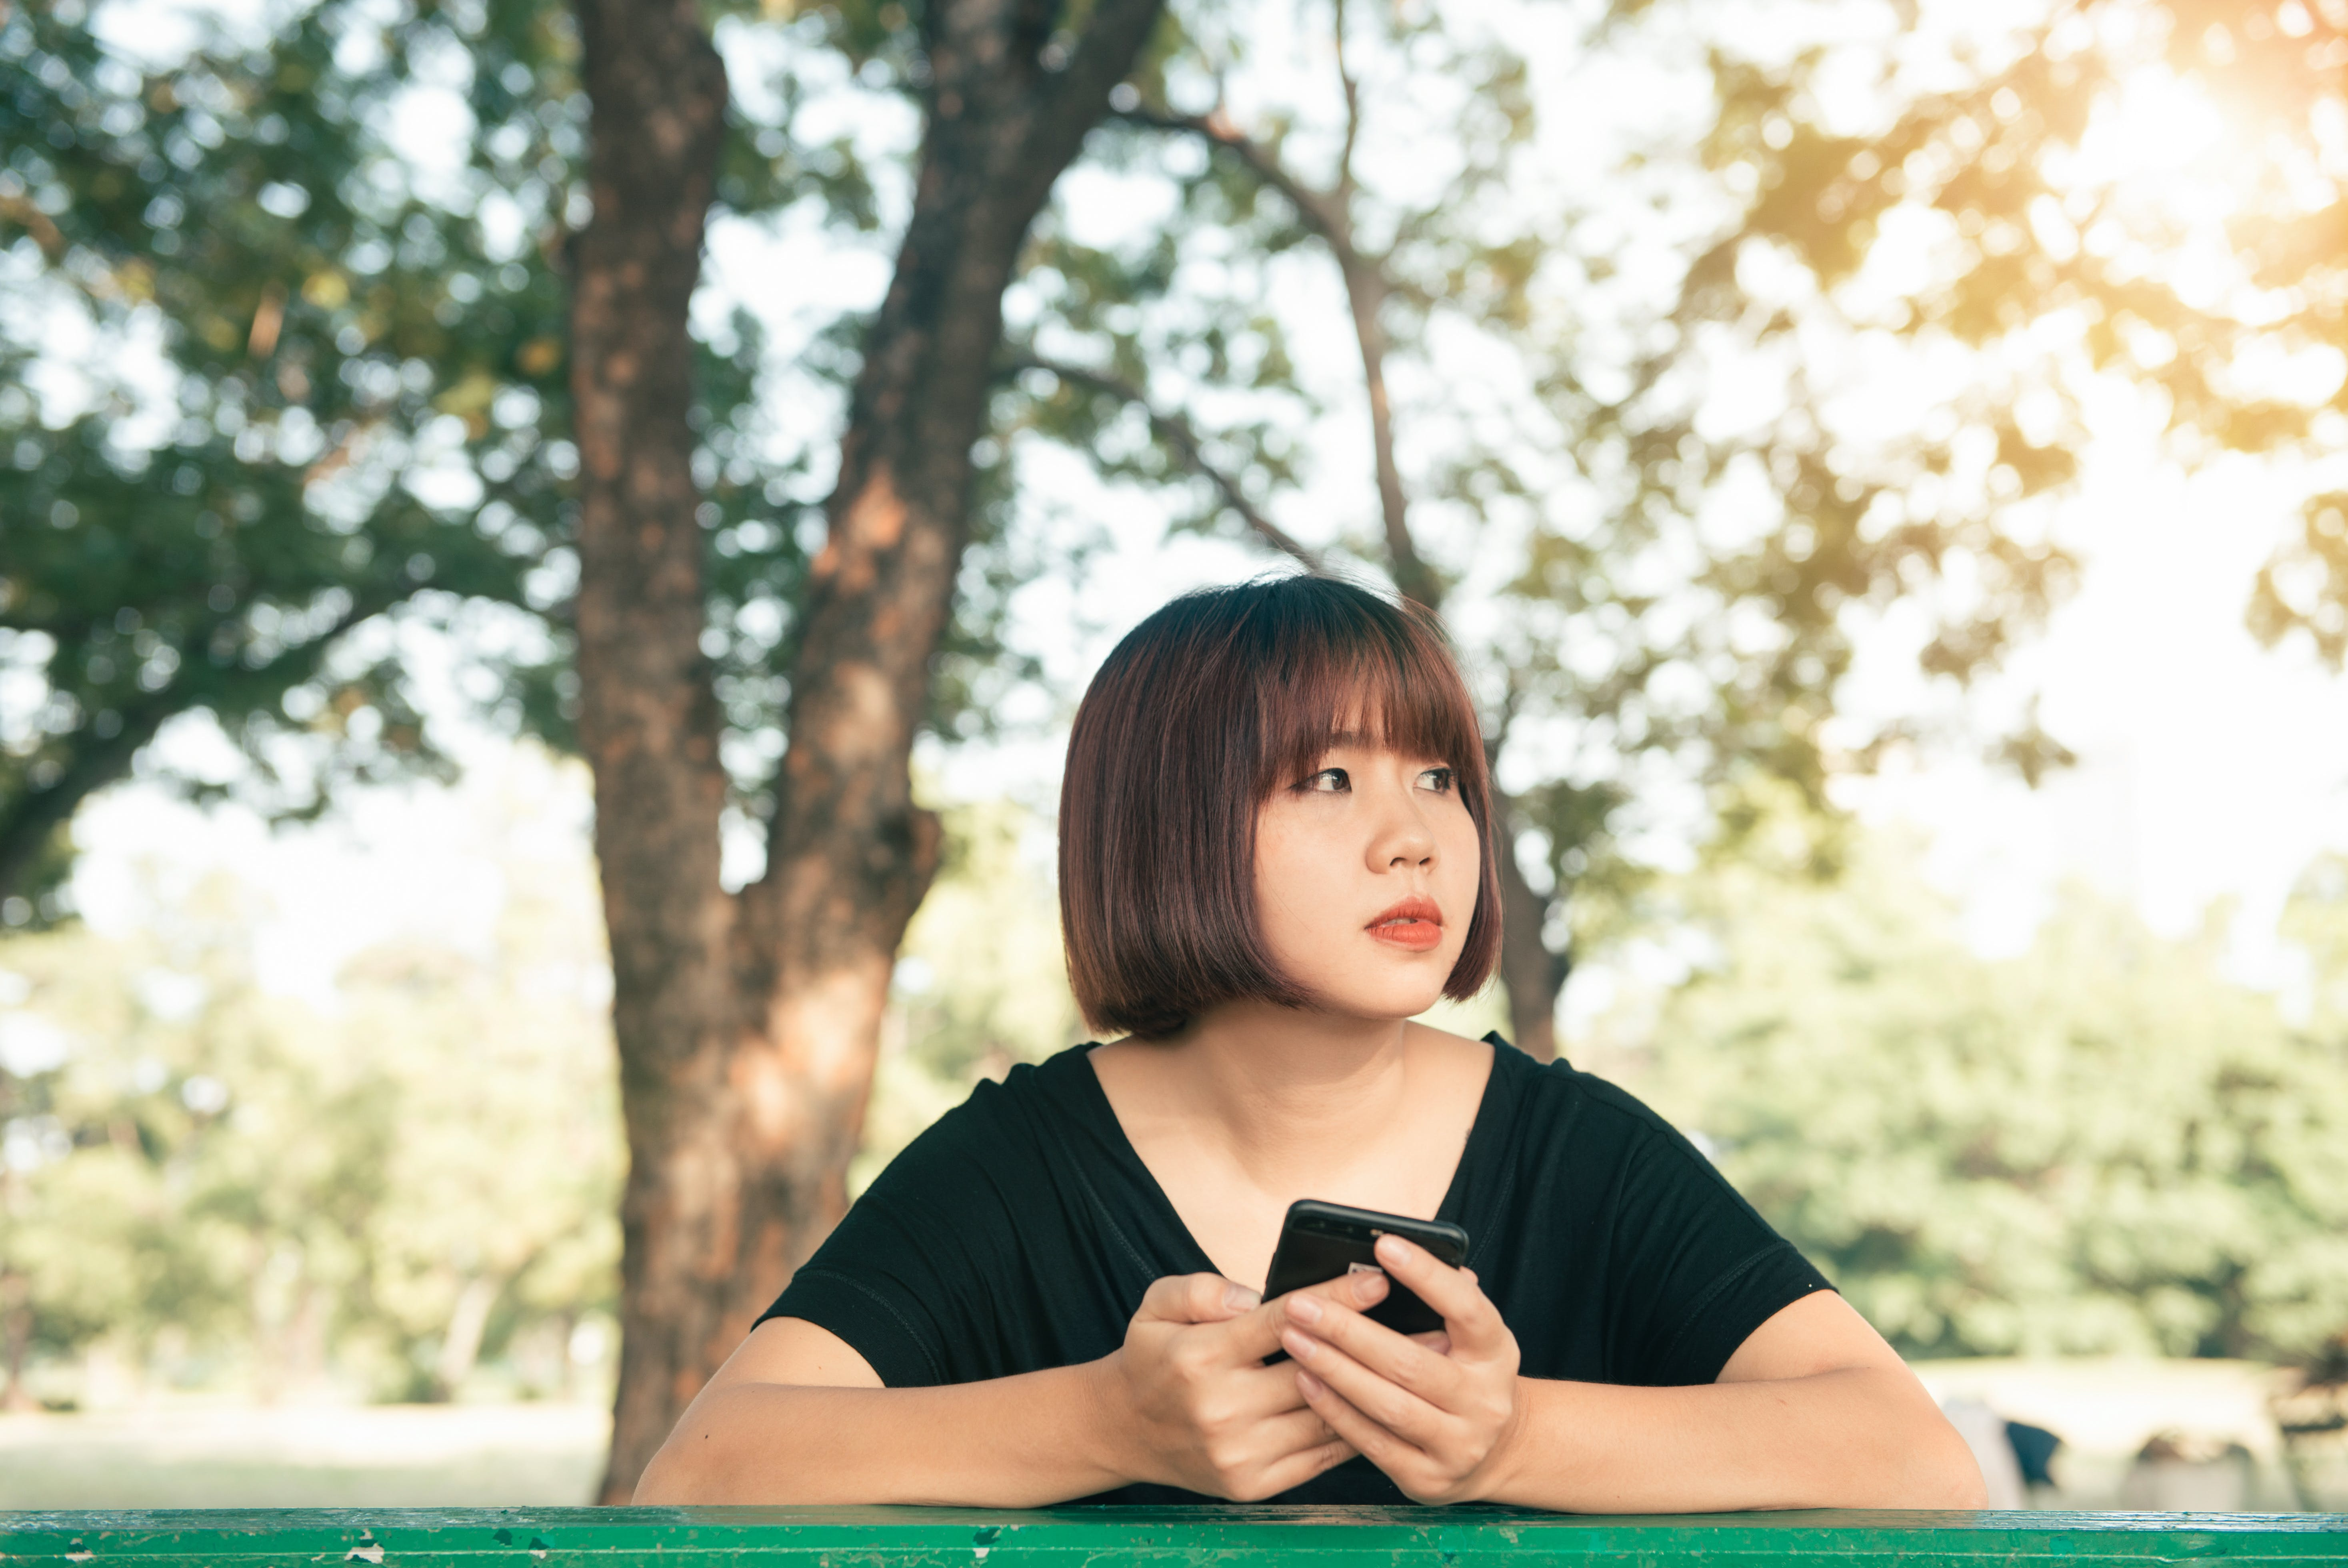 Woman Holding Smartphone Wearing Black Shirt Standing Under Tree